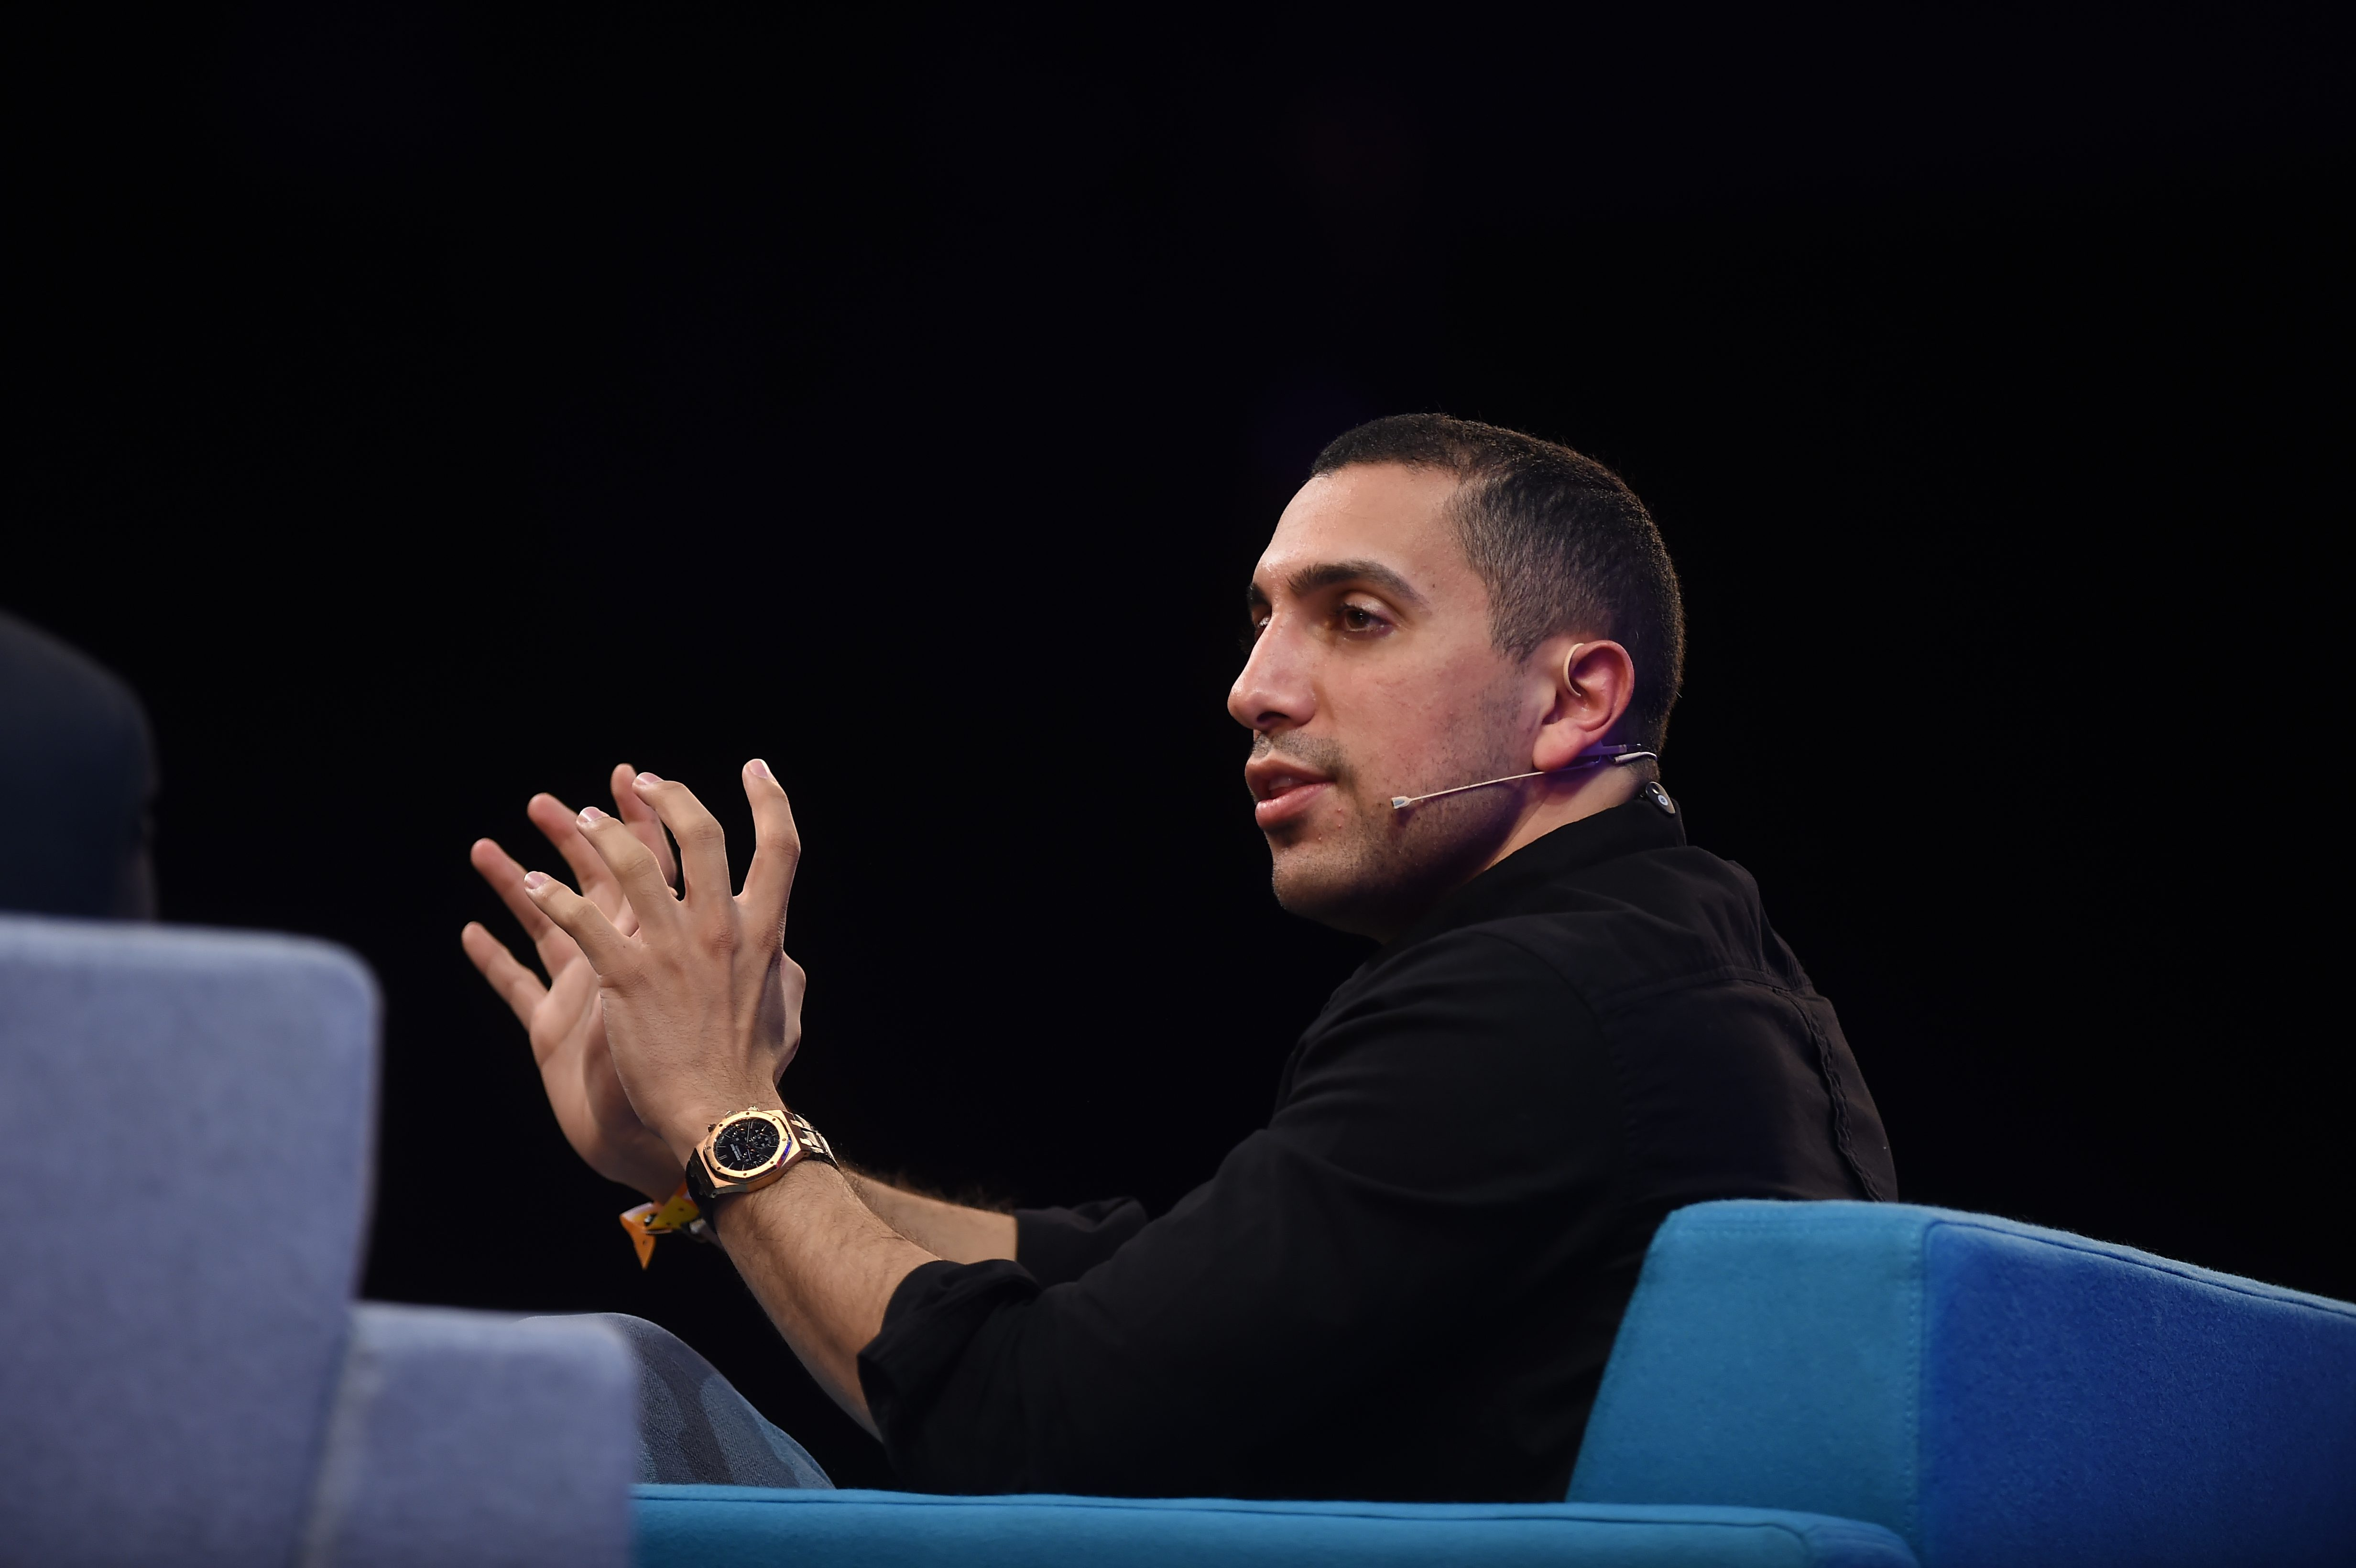 4 November 2015; Sean Rad, Co Founder & President, Tinder, on Centre Stage during Day 2 of the 2015 Web Summit in the RDS, Dublin, Ireland. Picture credit: Stephen McCarthy / SPORTSFILE / Web Summit